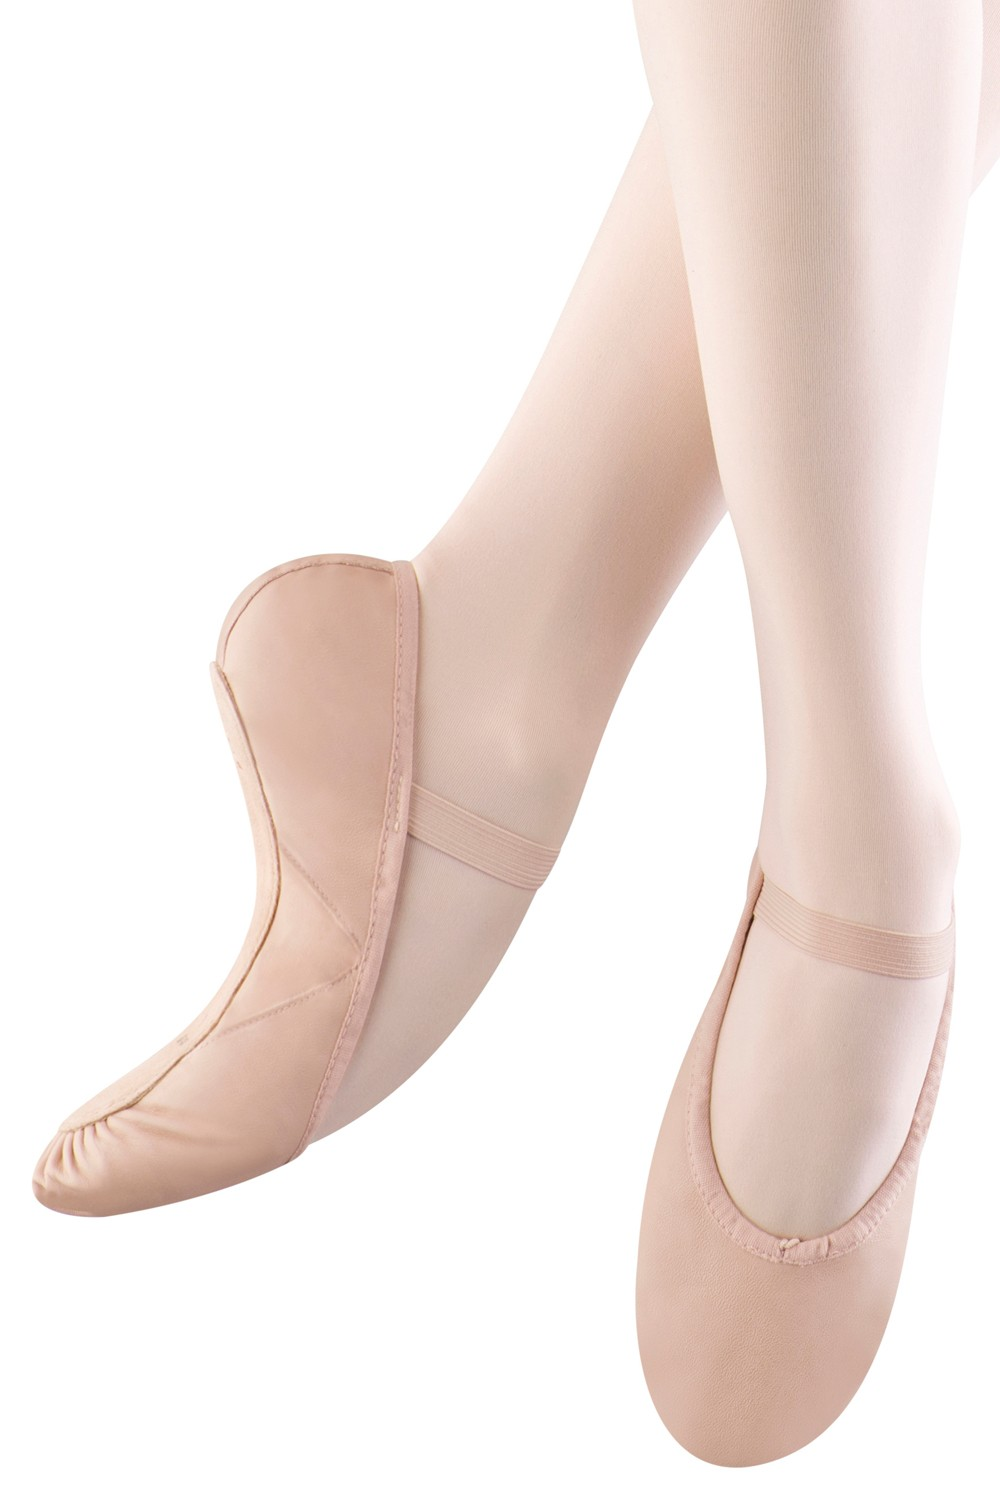 Ecole Women's Ballet Shoes